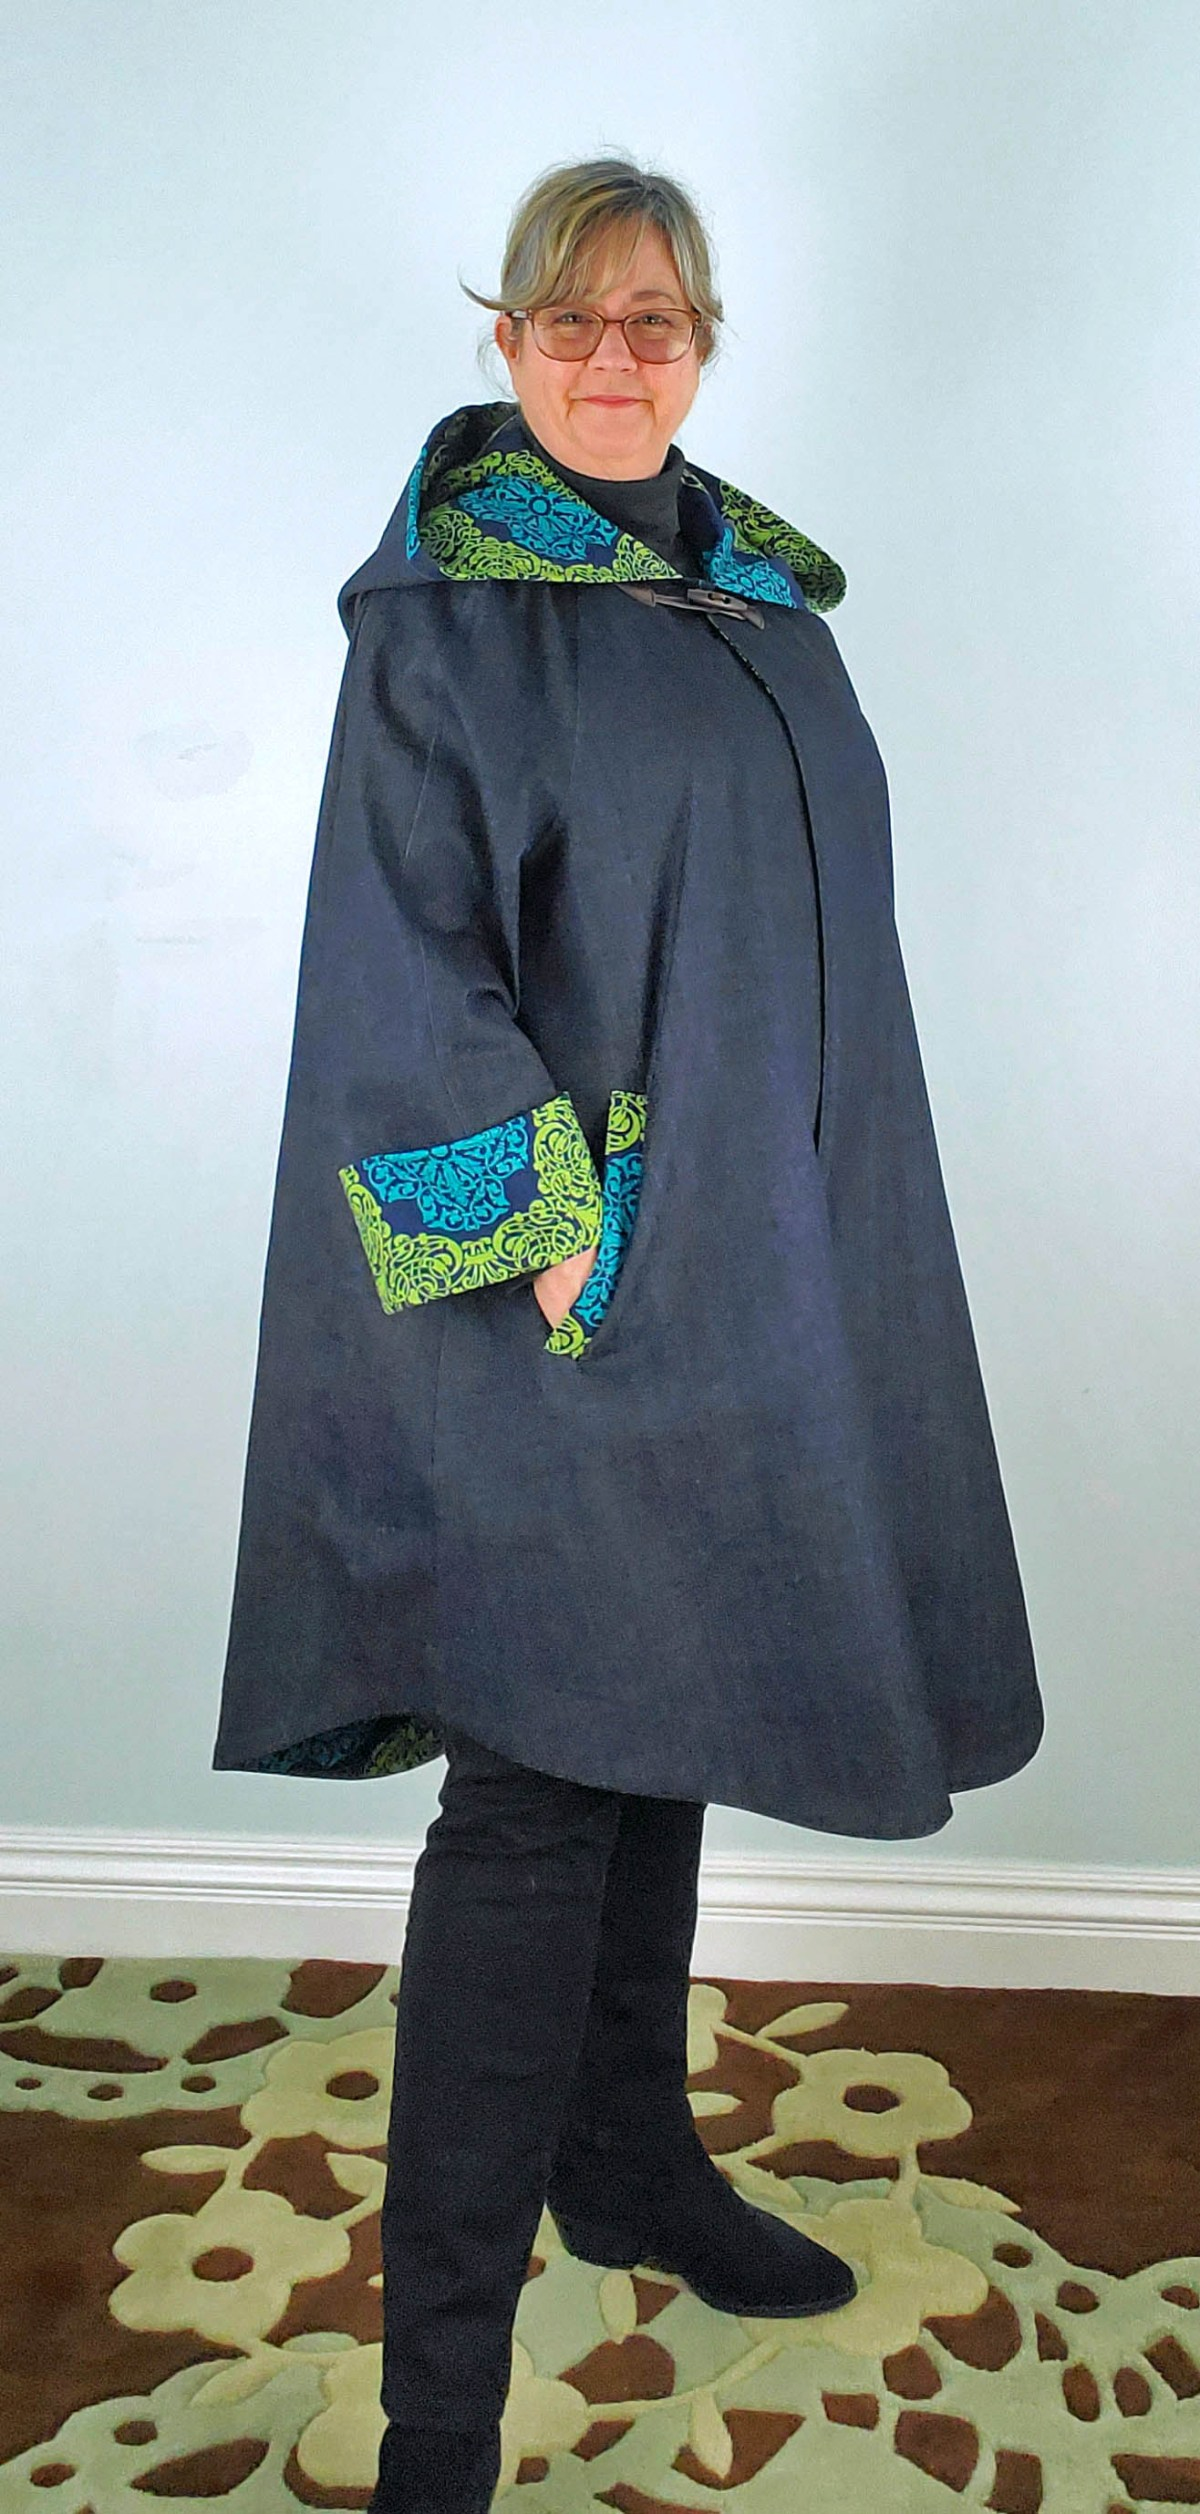 Kim models her long denim jacket. The large hood drapes over her shoulders, showing the contrasting bright green and blue patterned lining fabric. She has used the same contrast fabric for the jacket's cuffs and welt pockets; her right hand rests in the right jacket pocket.